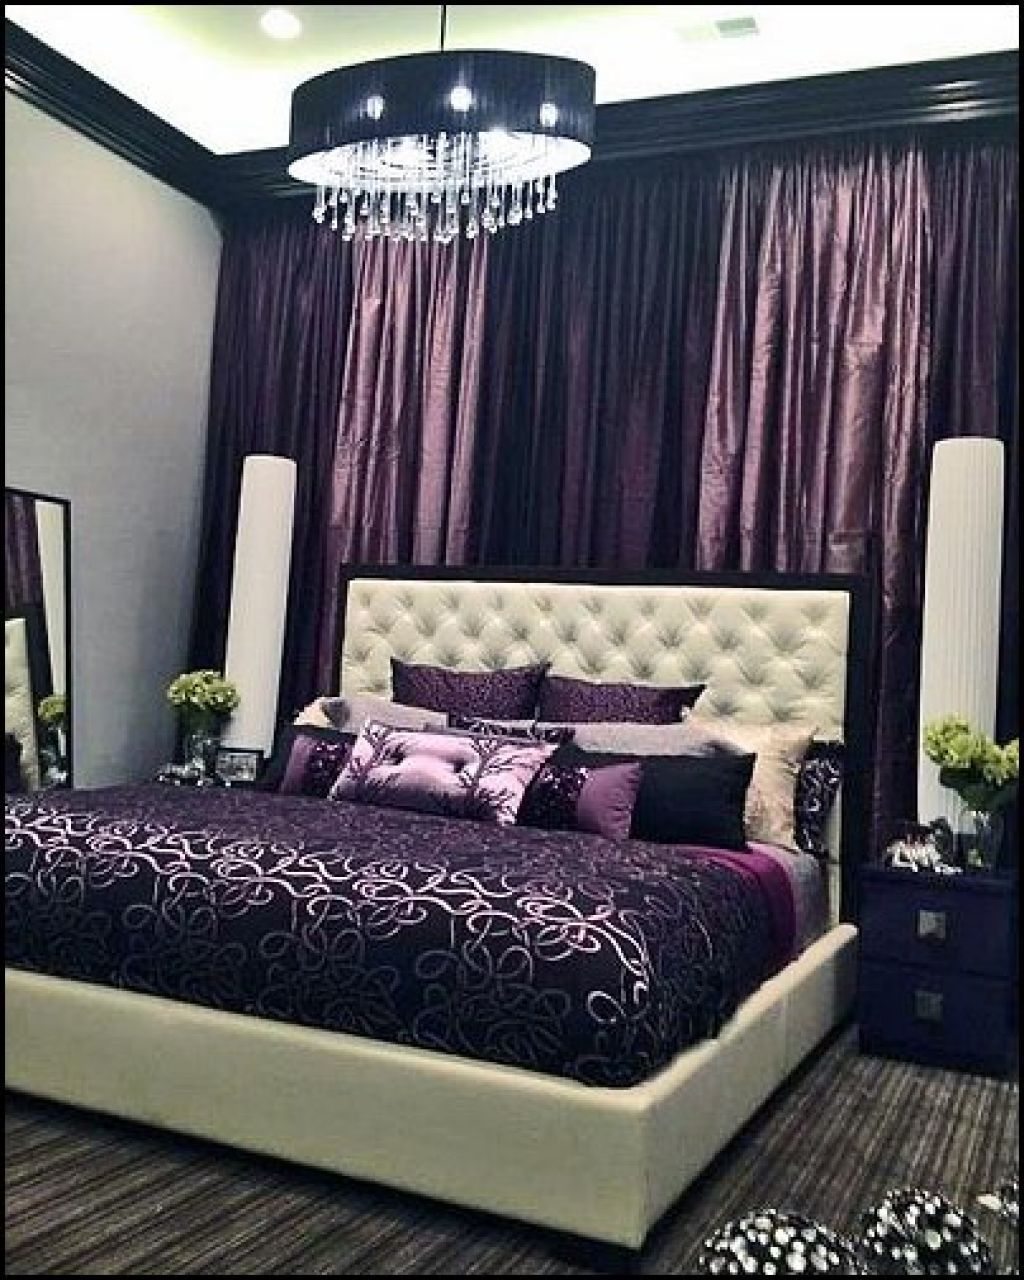 Gothic bohemian bedroom ideas visit the image link for more